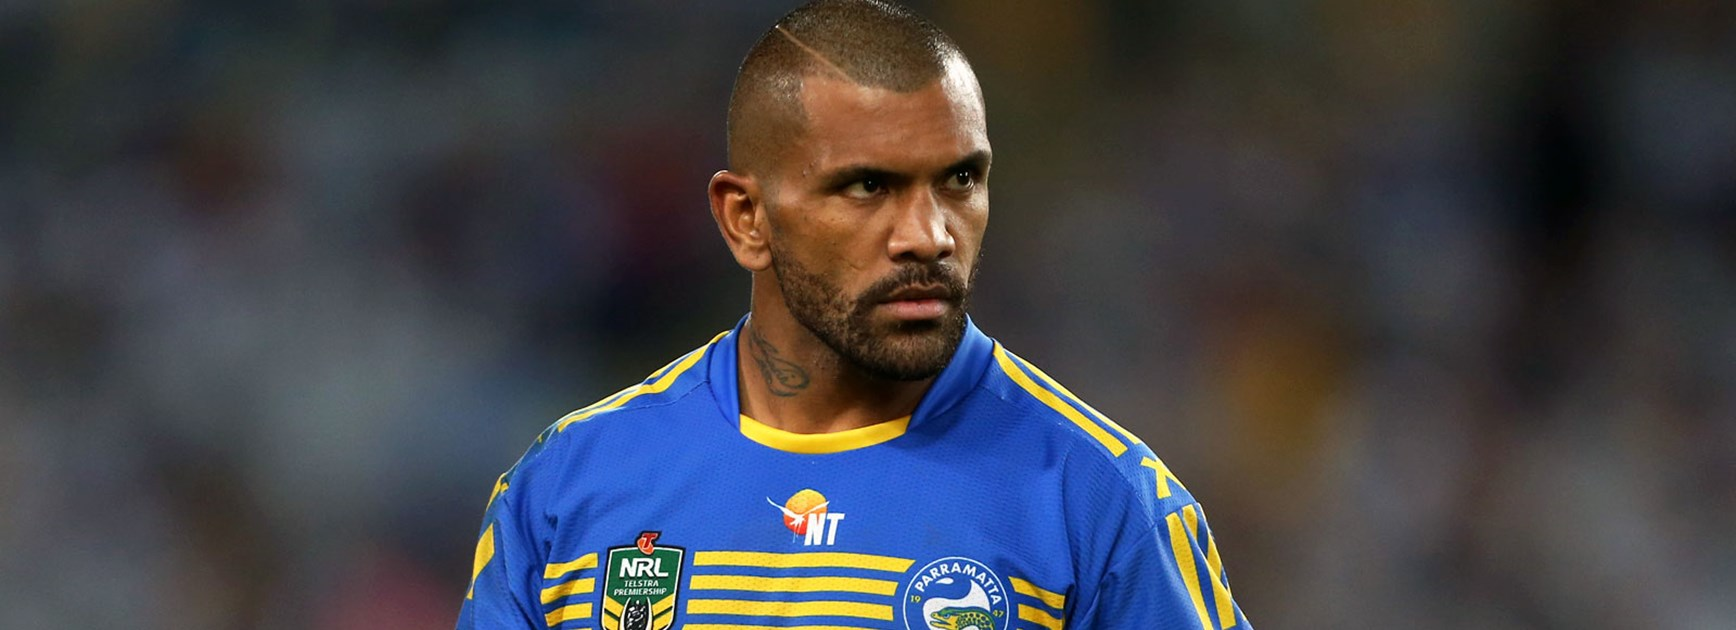 Eels back-rower Manu Ma'u has been found guilty of a dangerous throw charge at the NRL judiciary.